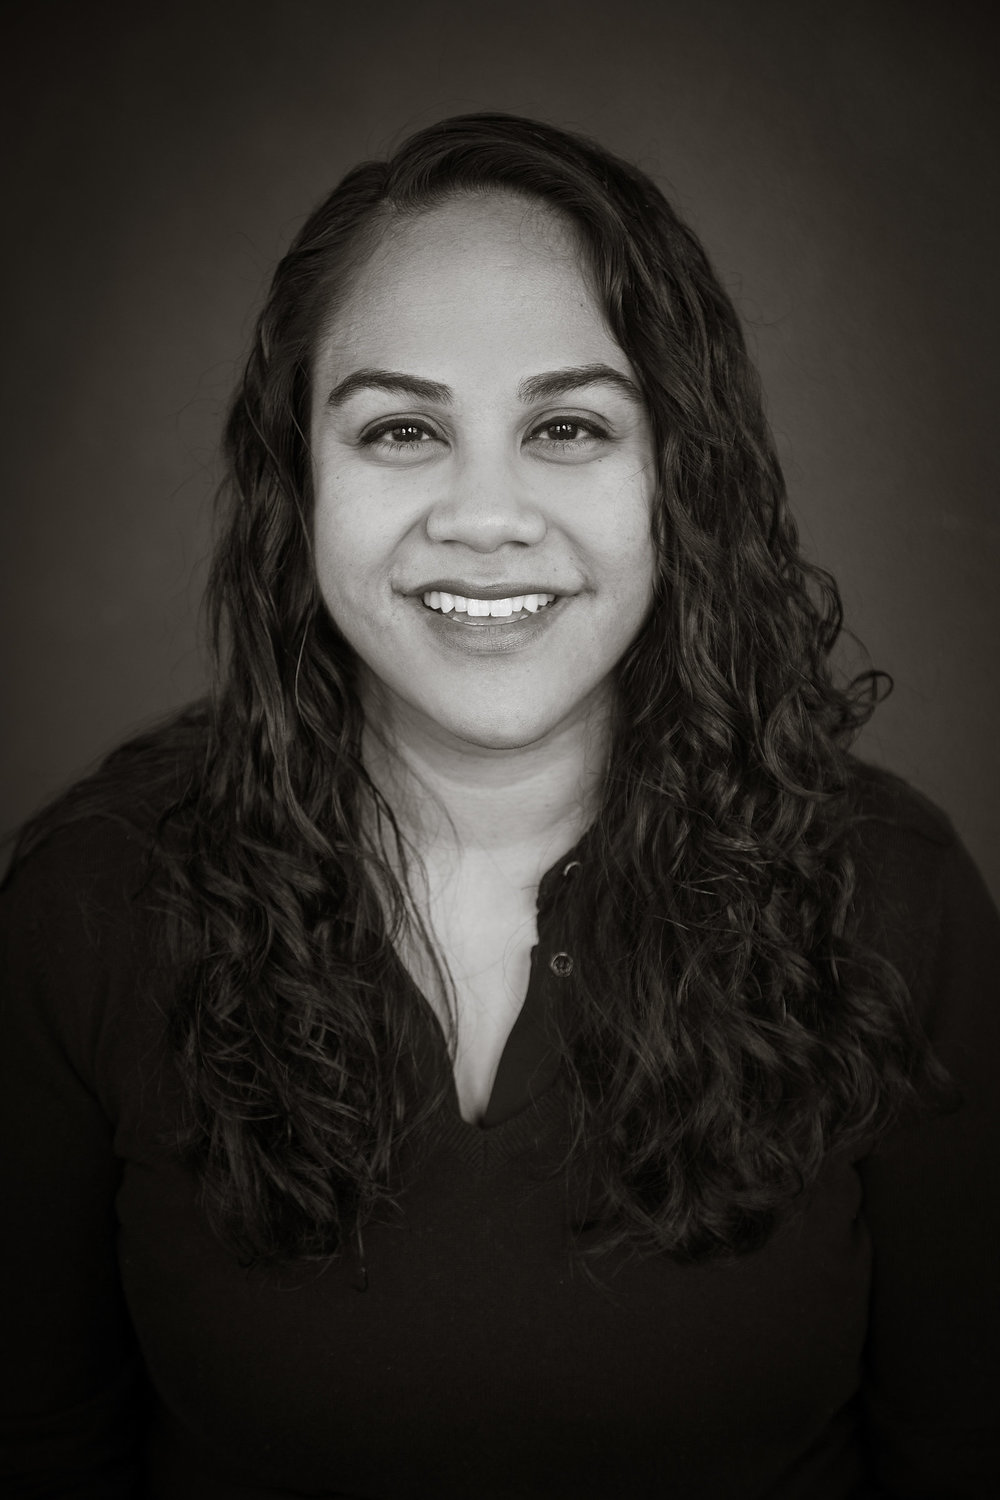 MOANA ULUAVE-HAFOKA   Policy Advisor & Community Outreach for Diversity and Human Rights